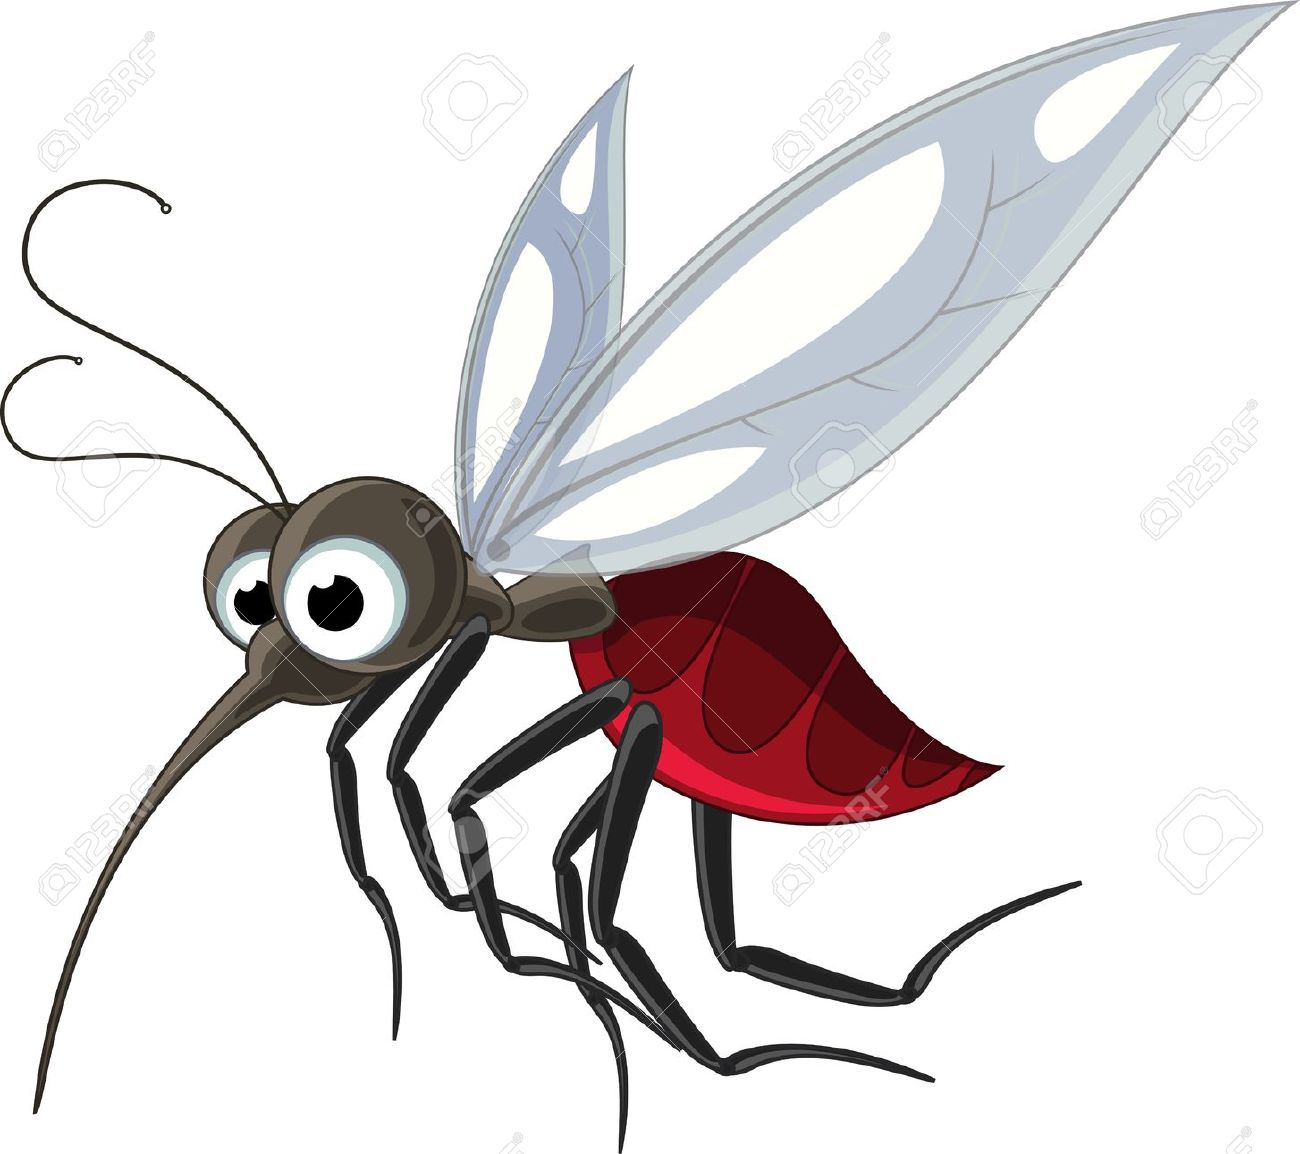 Mosquito clip art free clipart images wikiclipart.